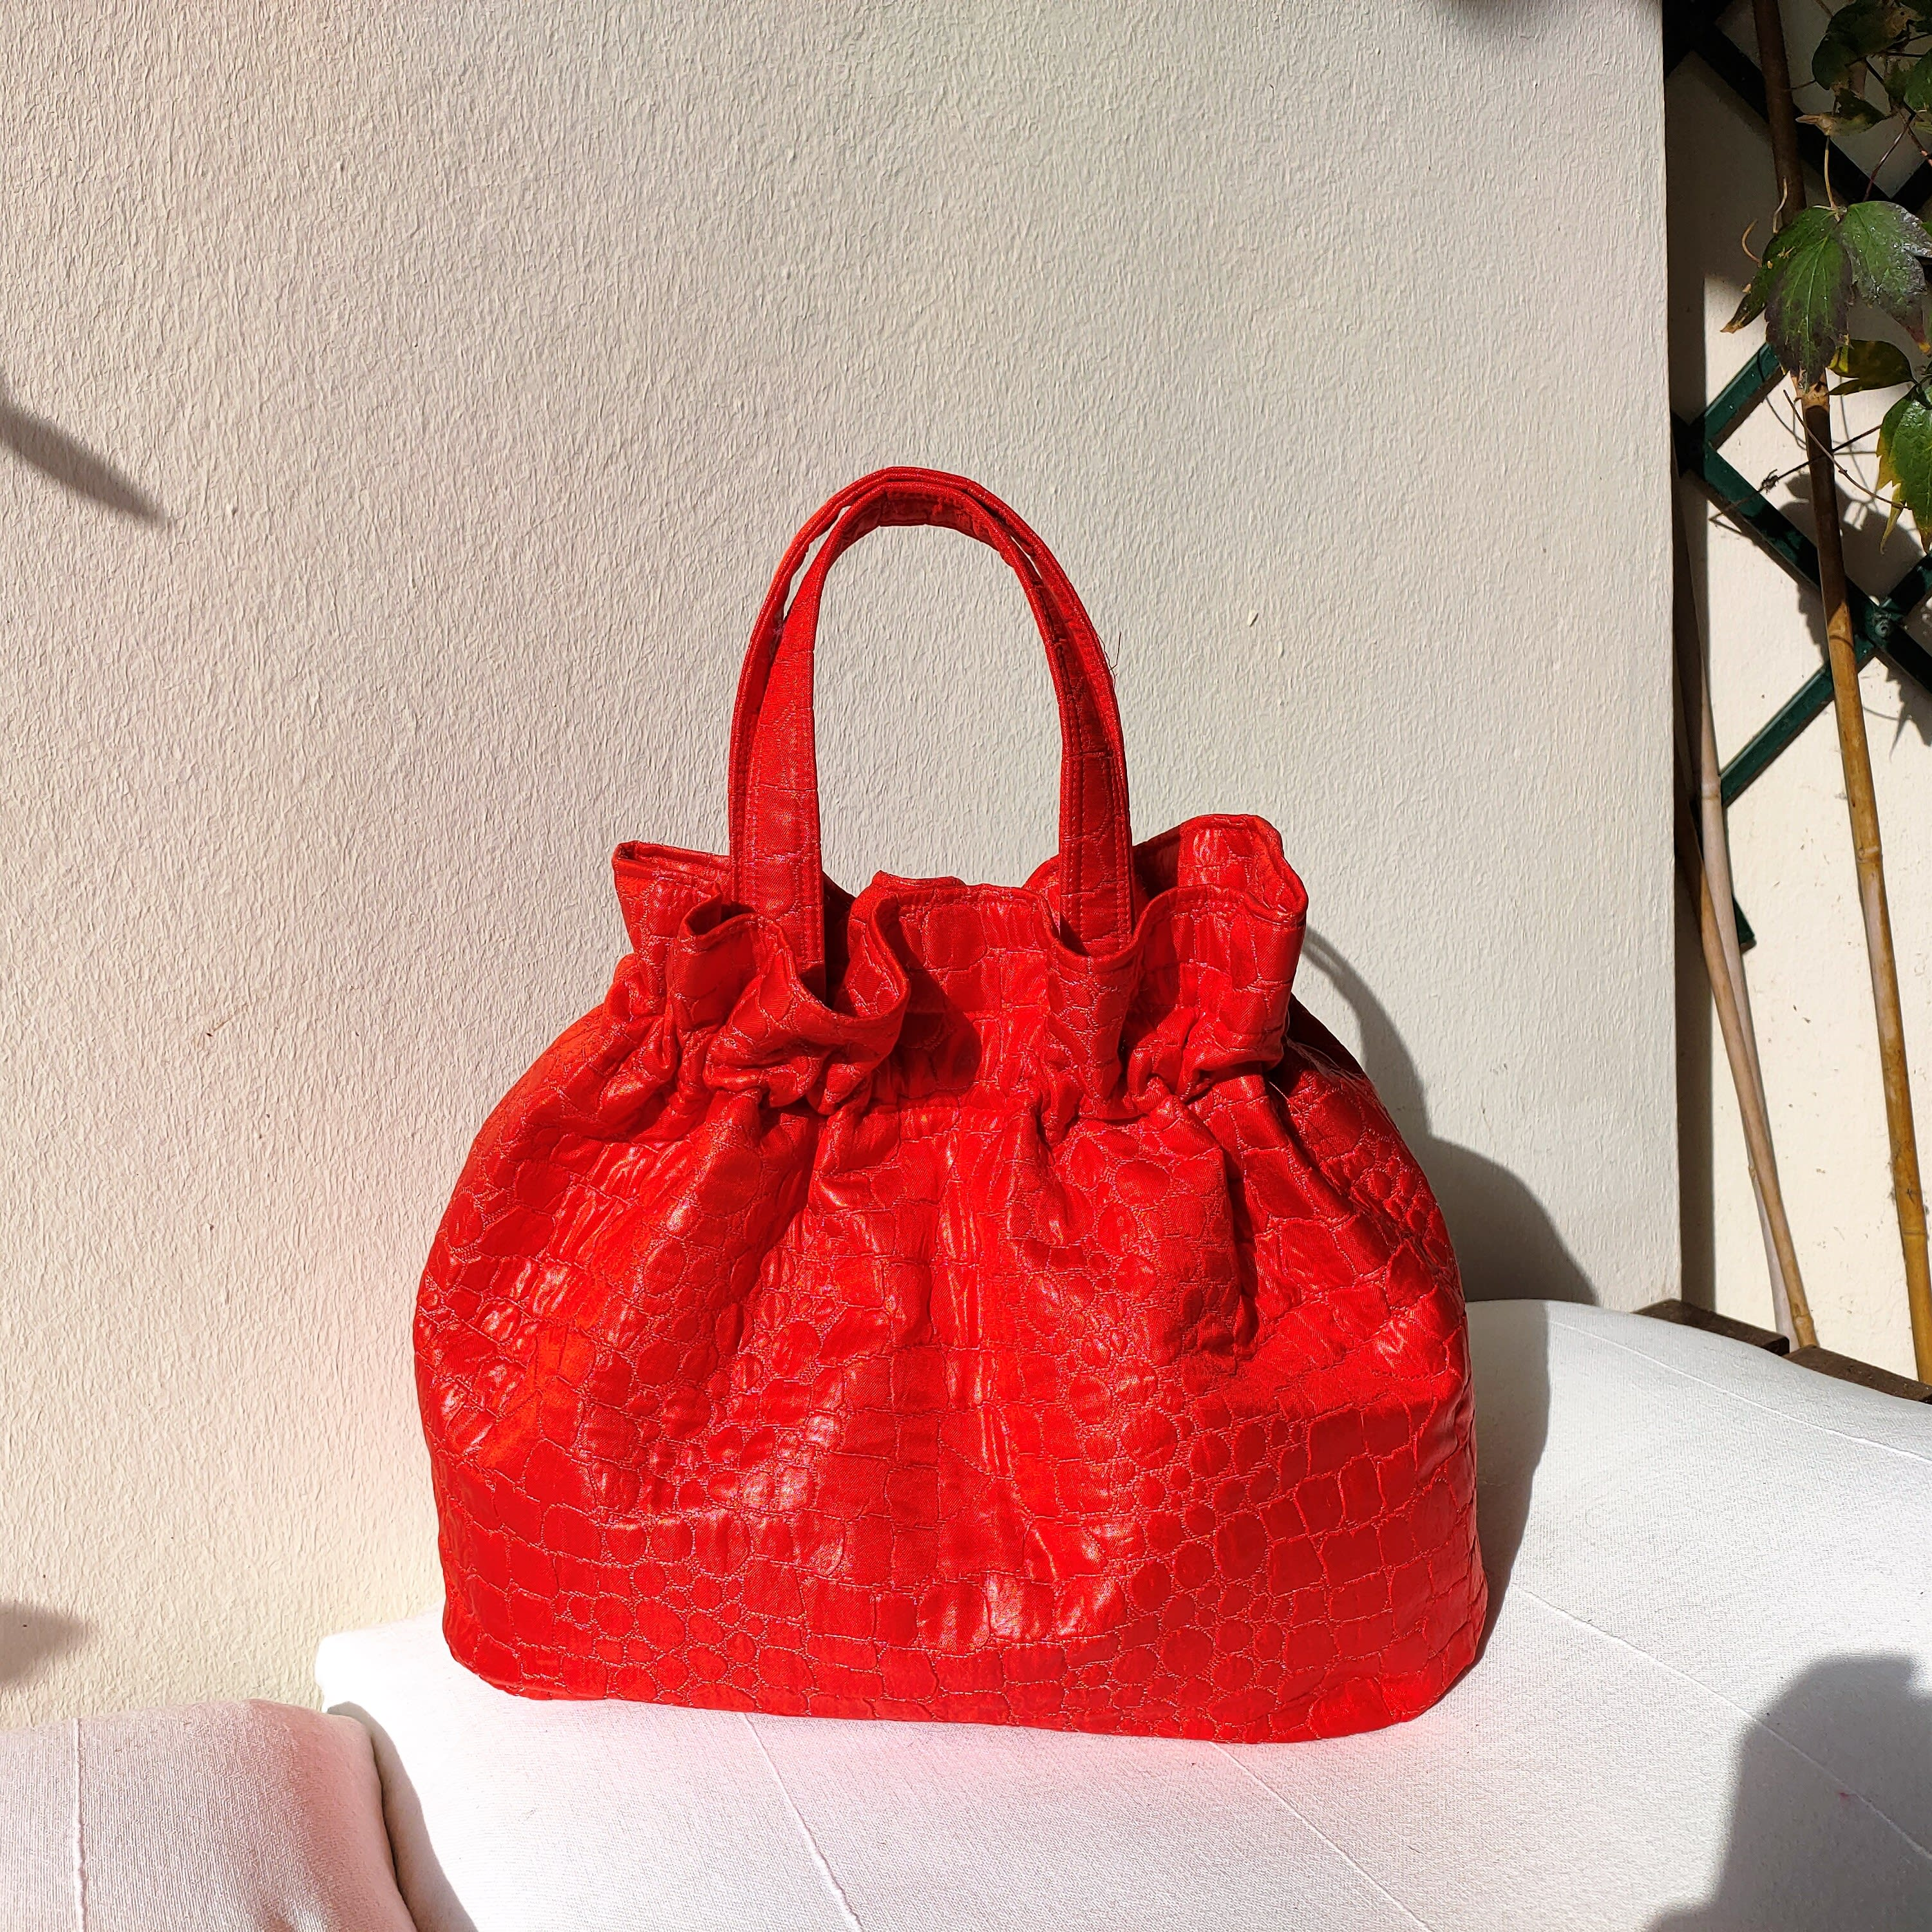 Red croco handbag. Vintage fabric purse with removable chain. Washable, handmade.